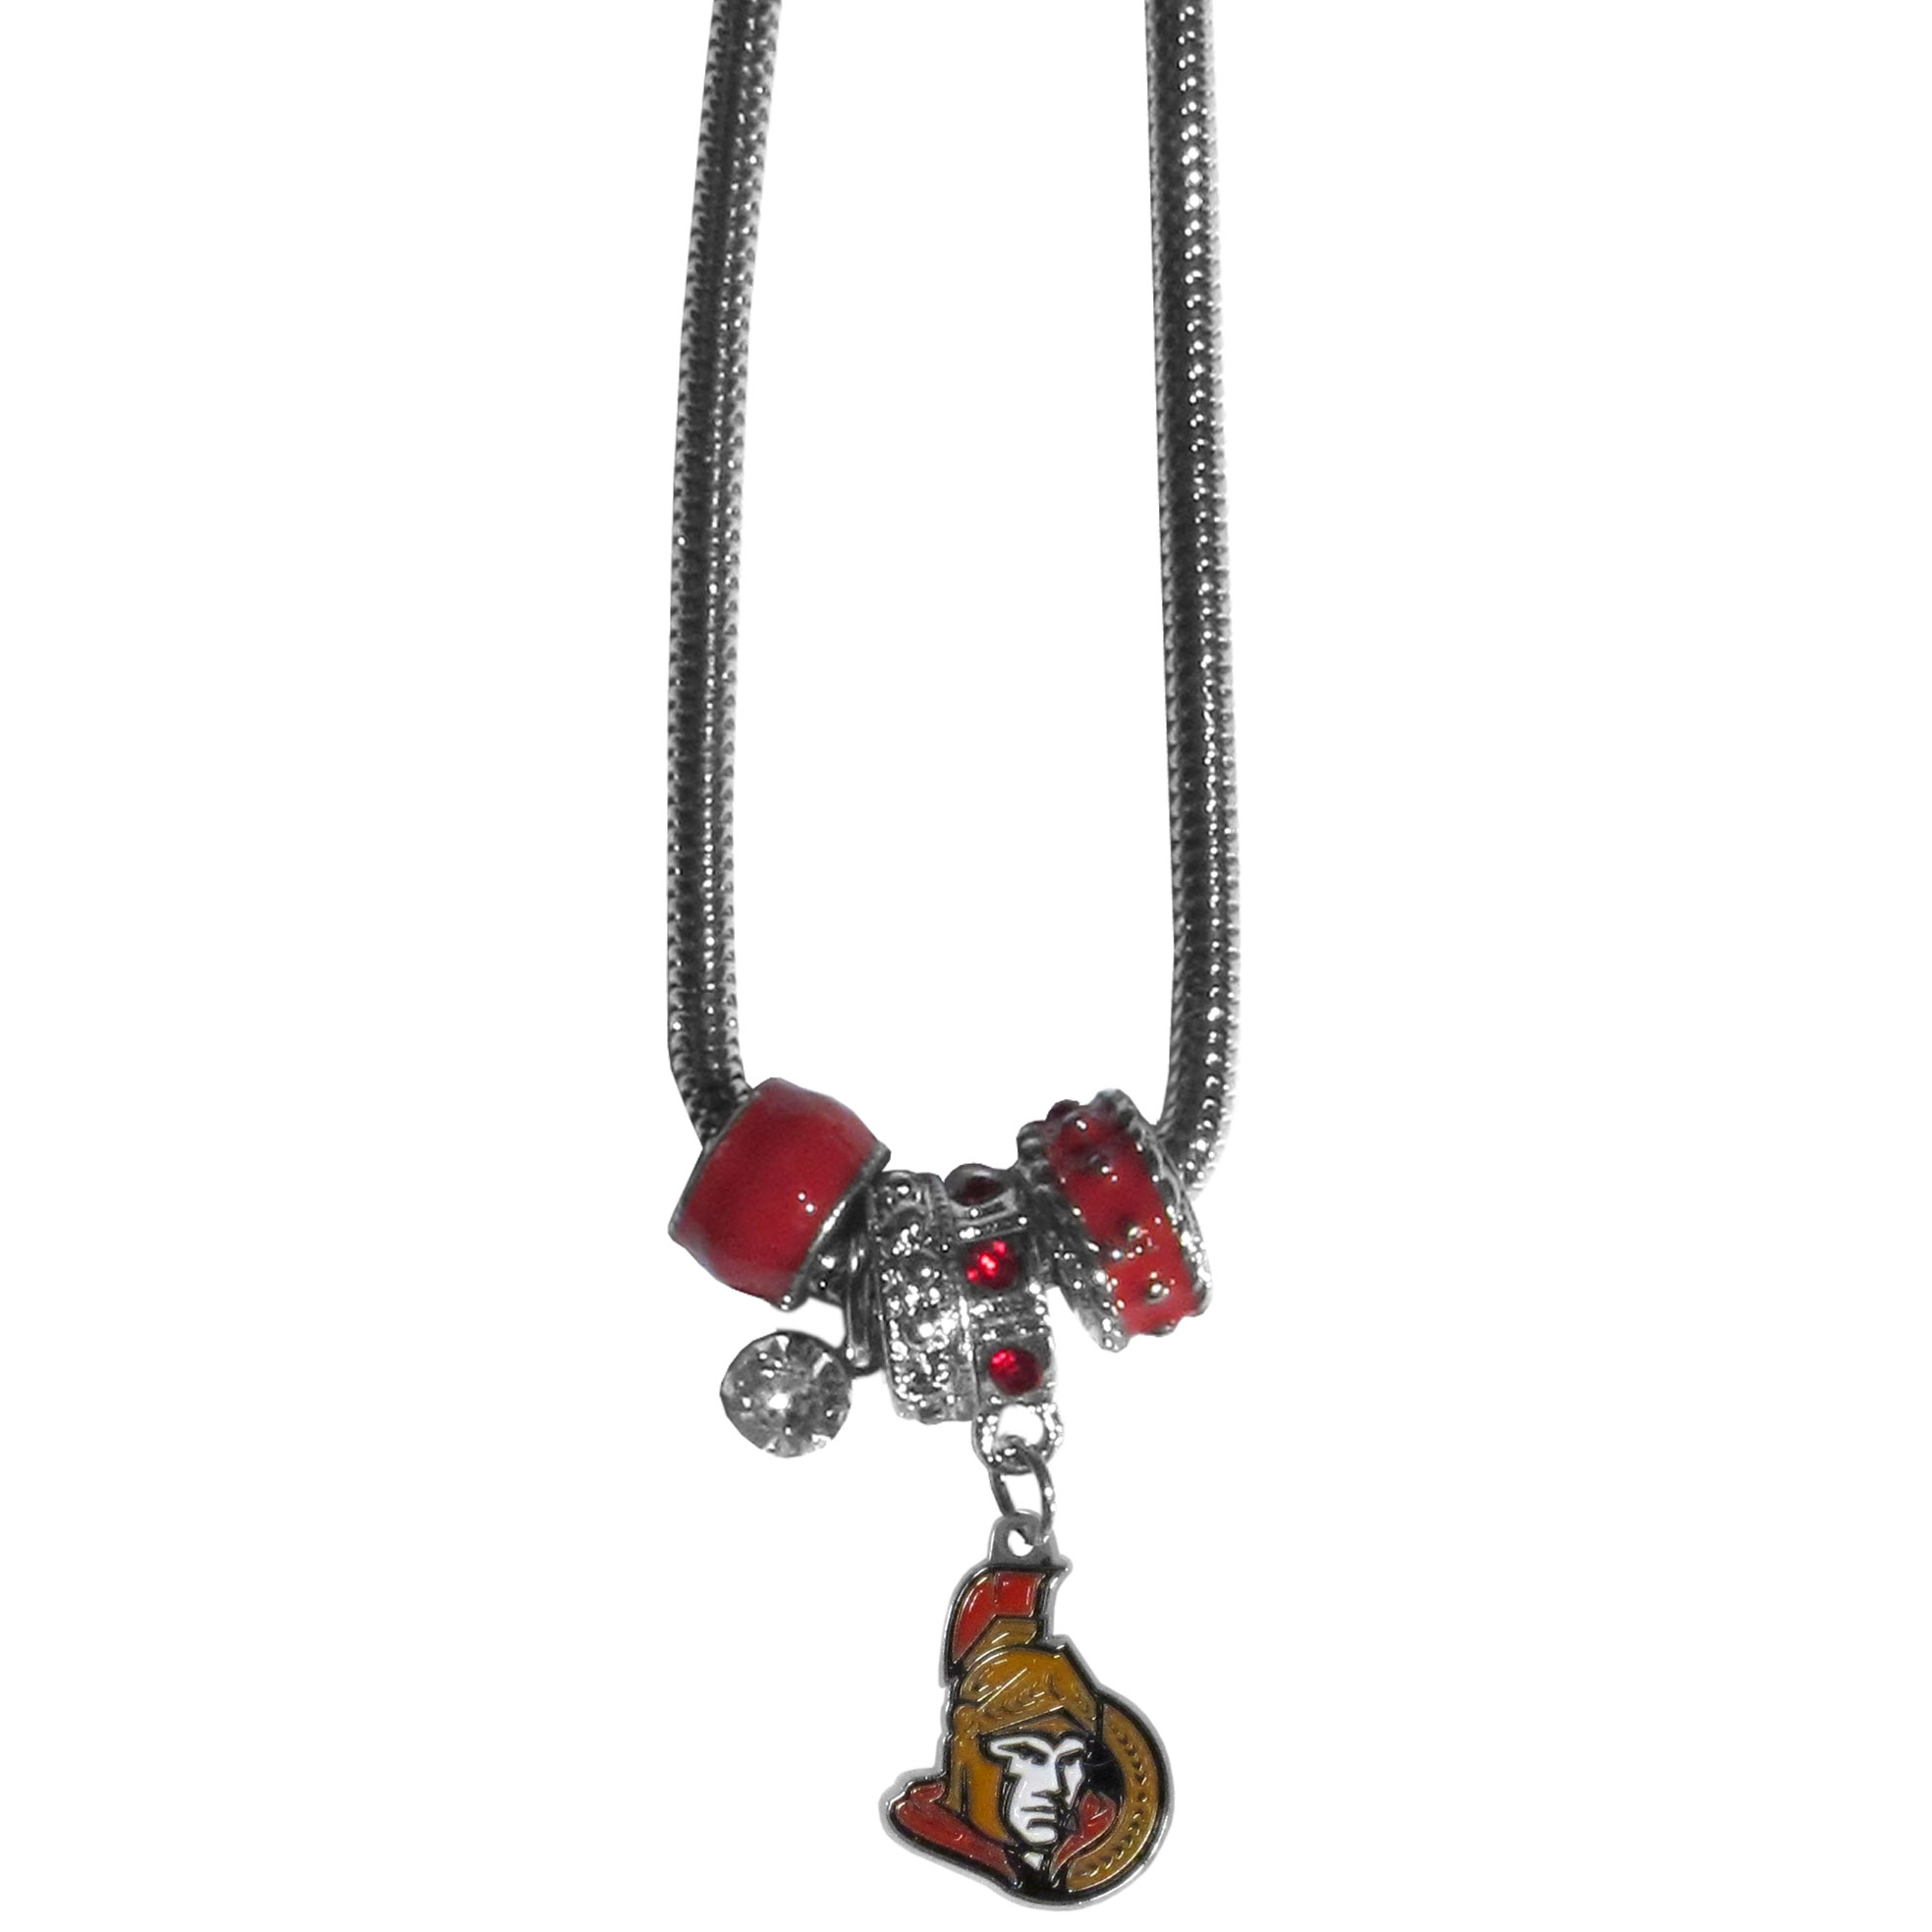 Ottawa Senators Euro Bead Necklace - We have combined the wildly popular Euro style beads with your favorite team to create our Ottawa Senators bead necklace. The 18 inch snake chain features 4 Euro beads with enameled Ottawa Senators colors and rhinestone accents with a high polish, nickel free charm and rhinestone charm. Perfect way to show off your Ottawa Senators pride.